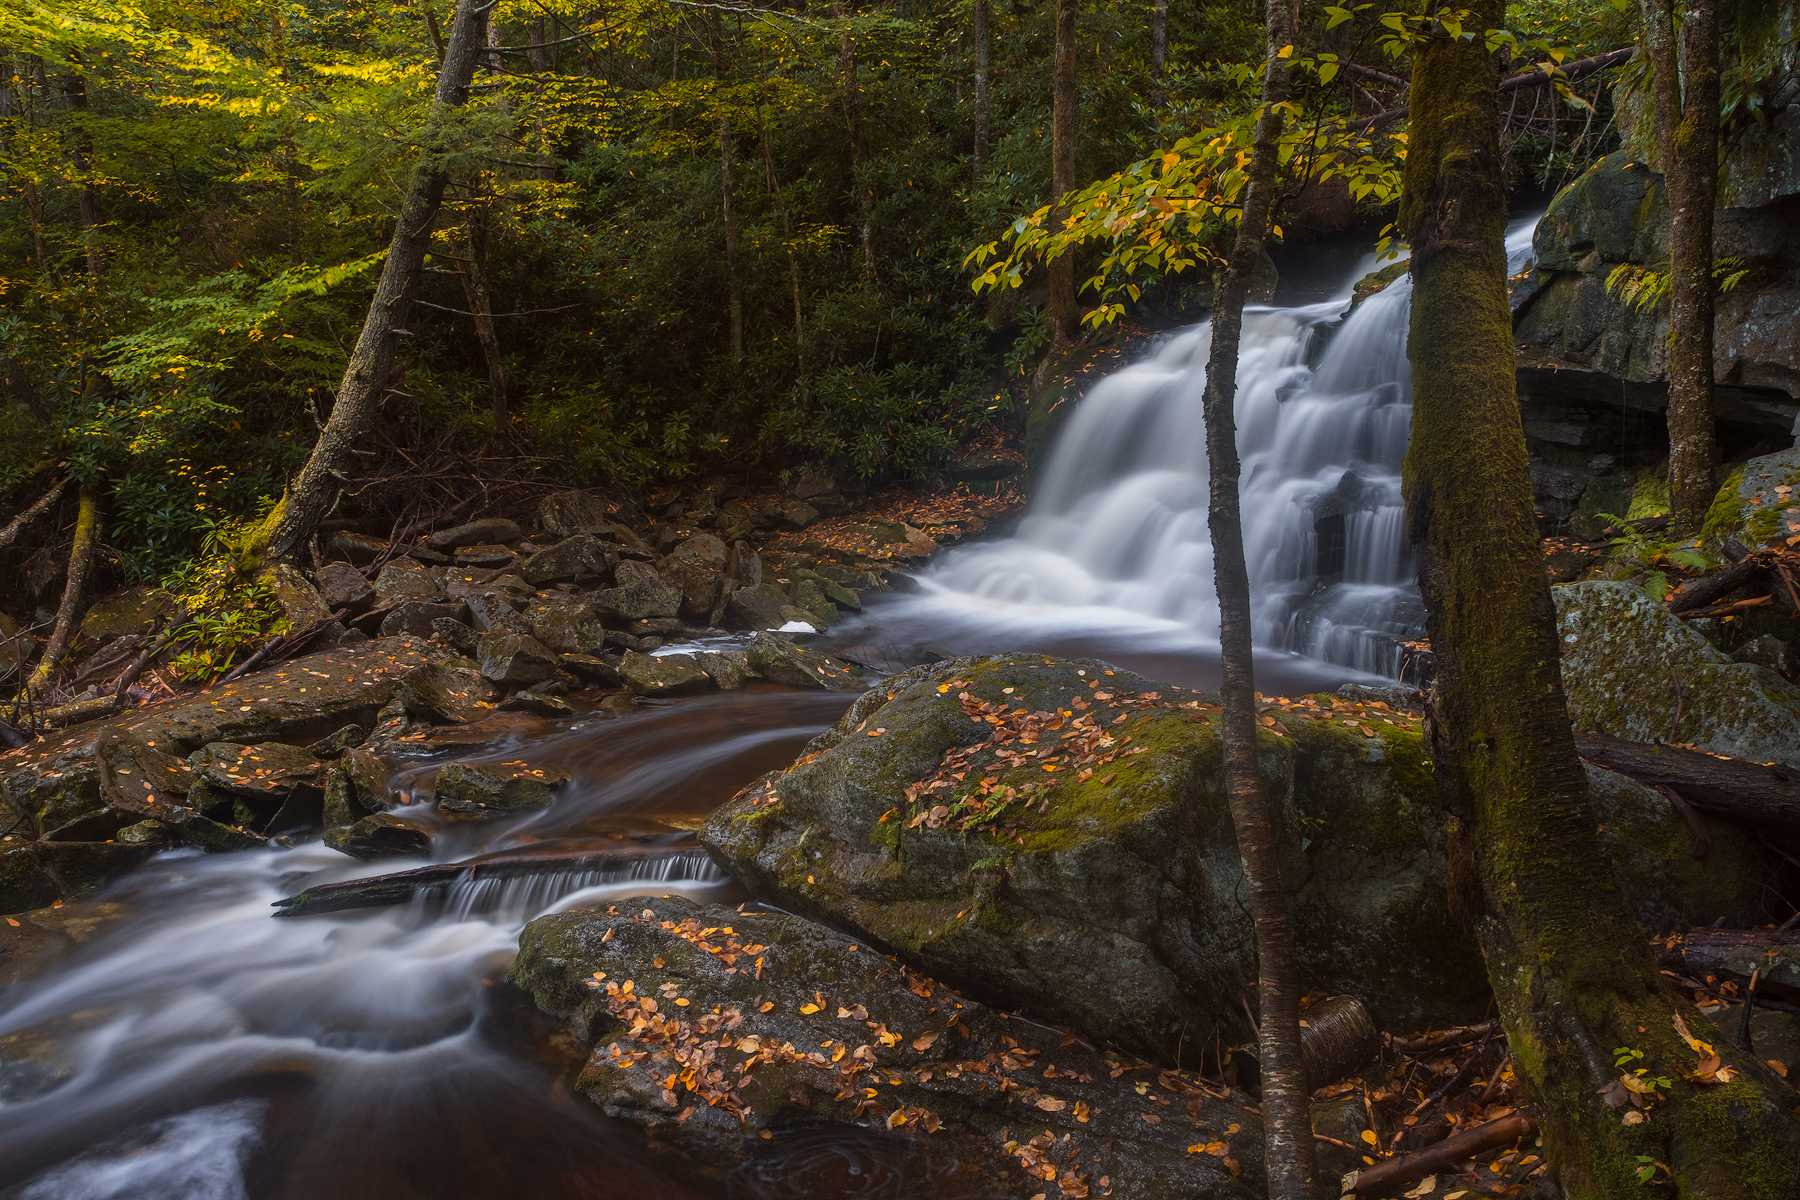 Elakala No 2 • Shay's Run, Black Water Falls State Park, West Virginia. Fuji X-T2 and a Fujinon XF10-24mm at 14mm. Image exposed at ISO 200 at f11 for 8 seconds.